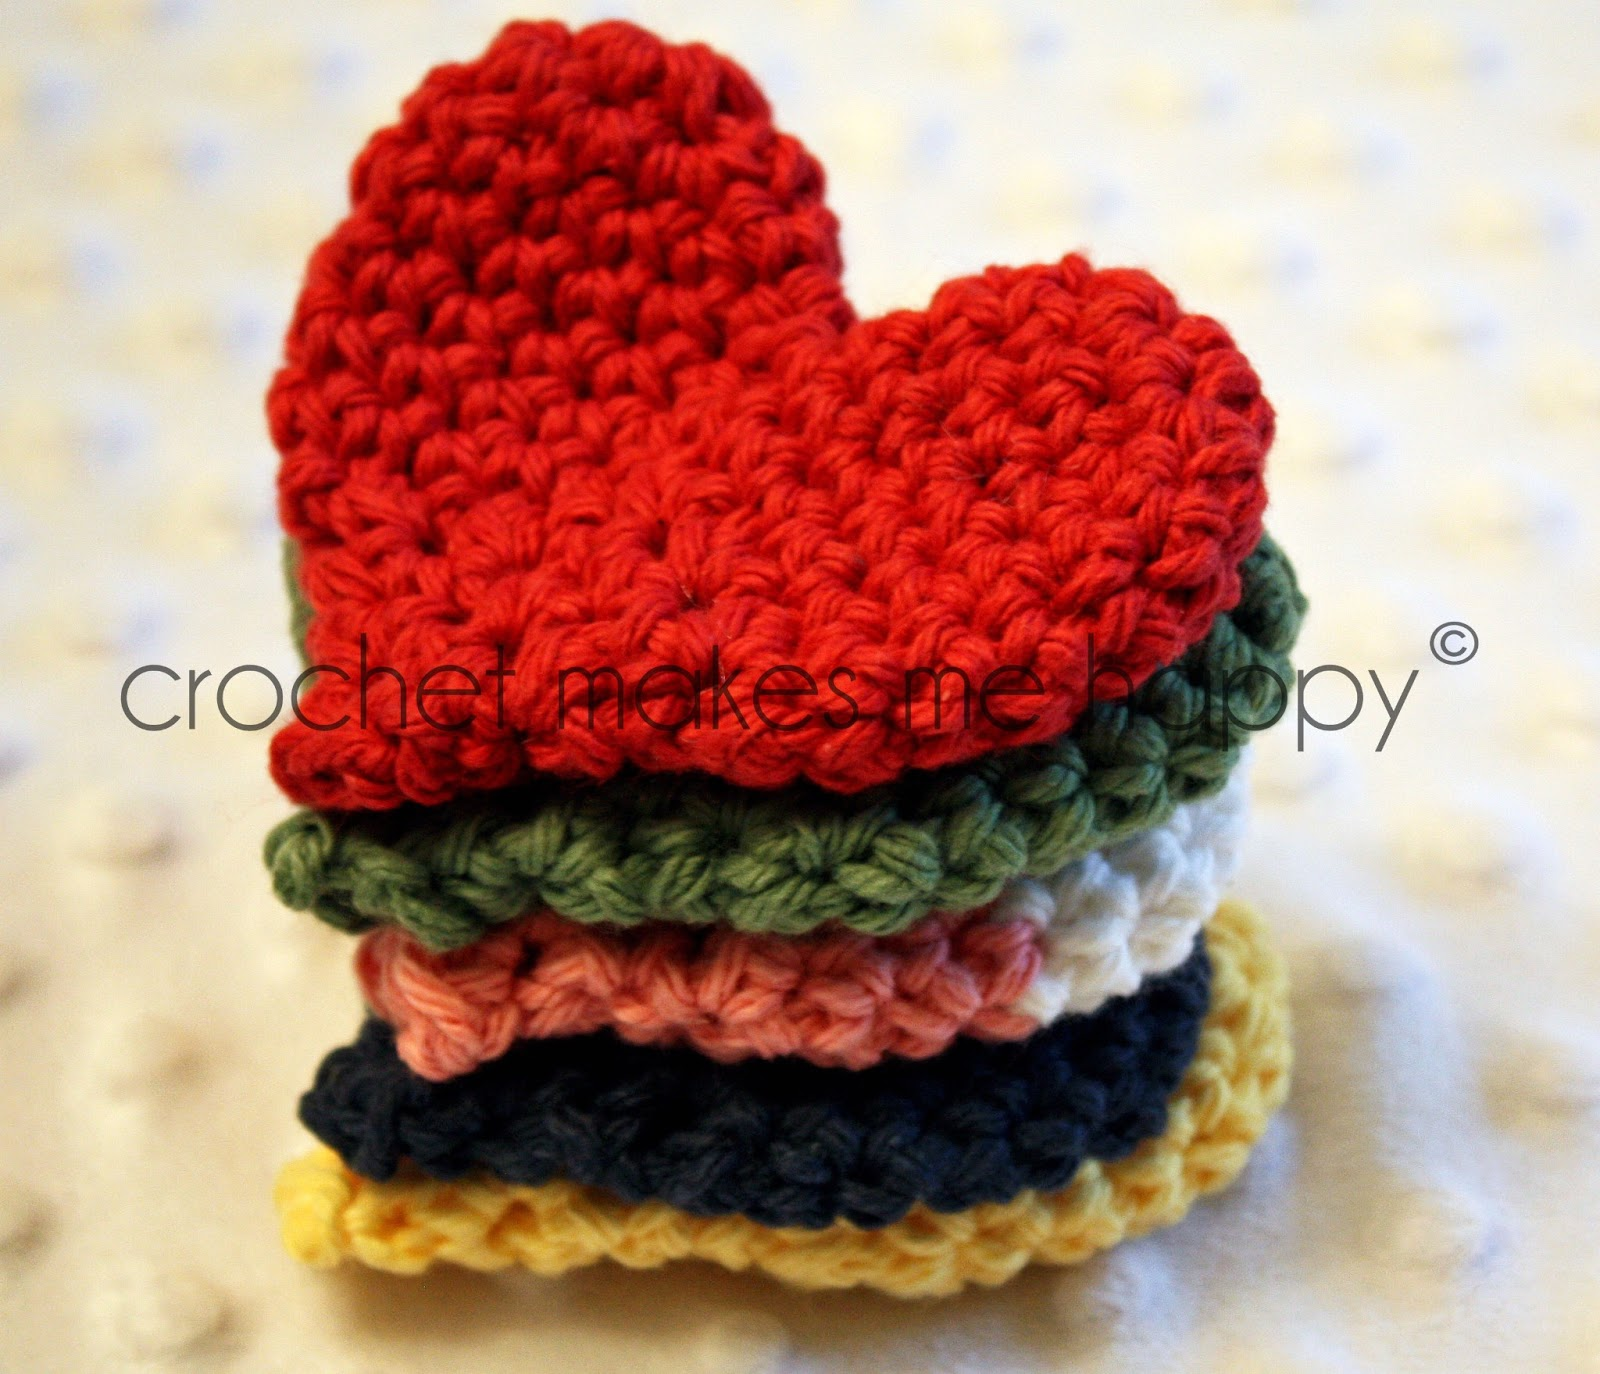 Crochet Patterns Hearts : Crochet Makes Me Happy!: Crochet Pattern: The Heart